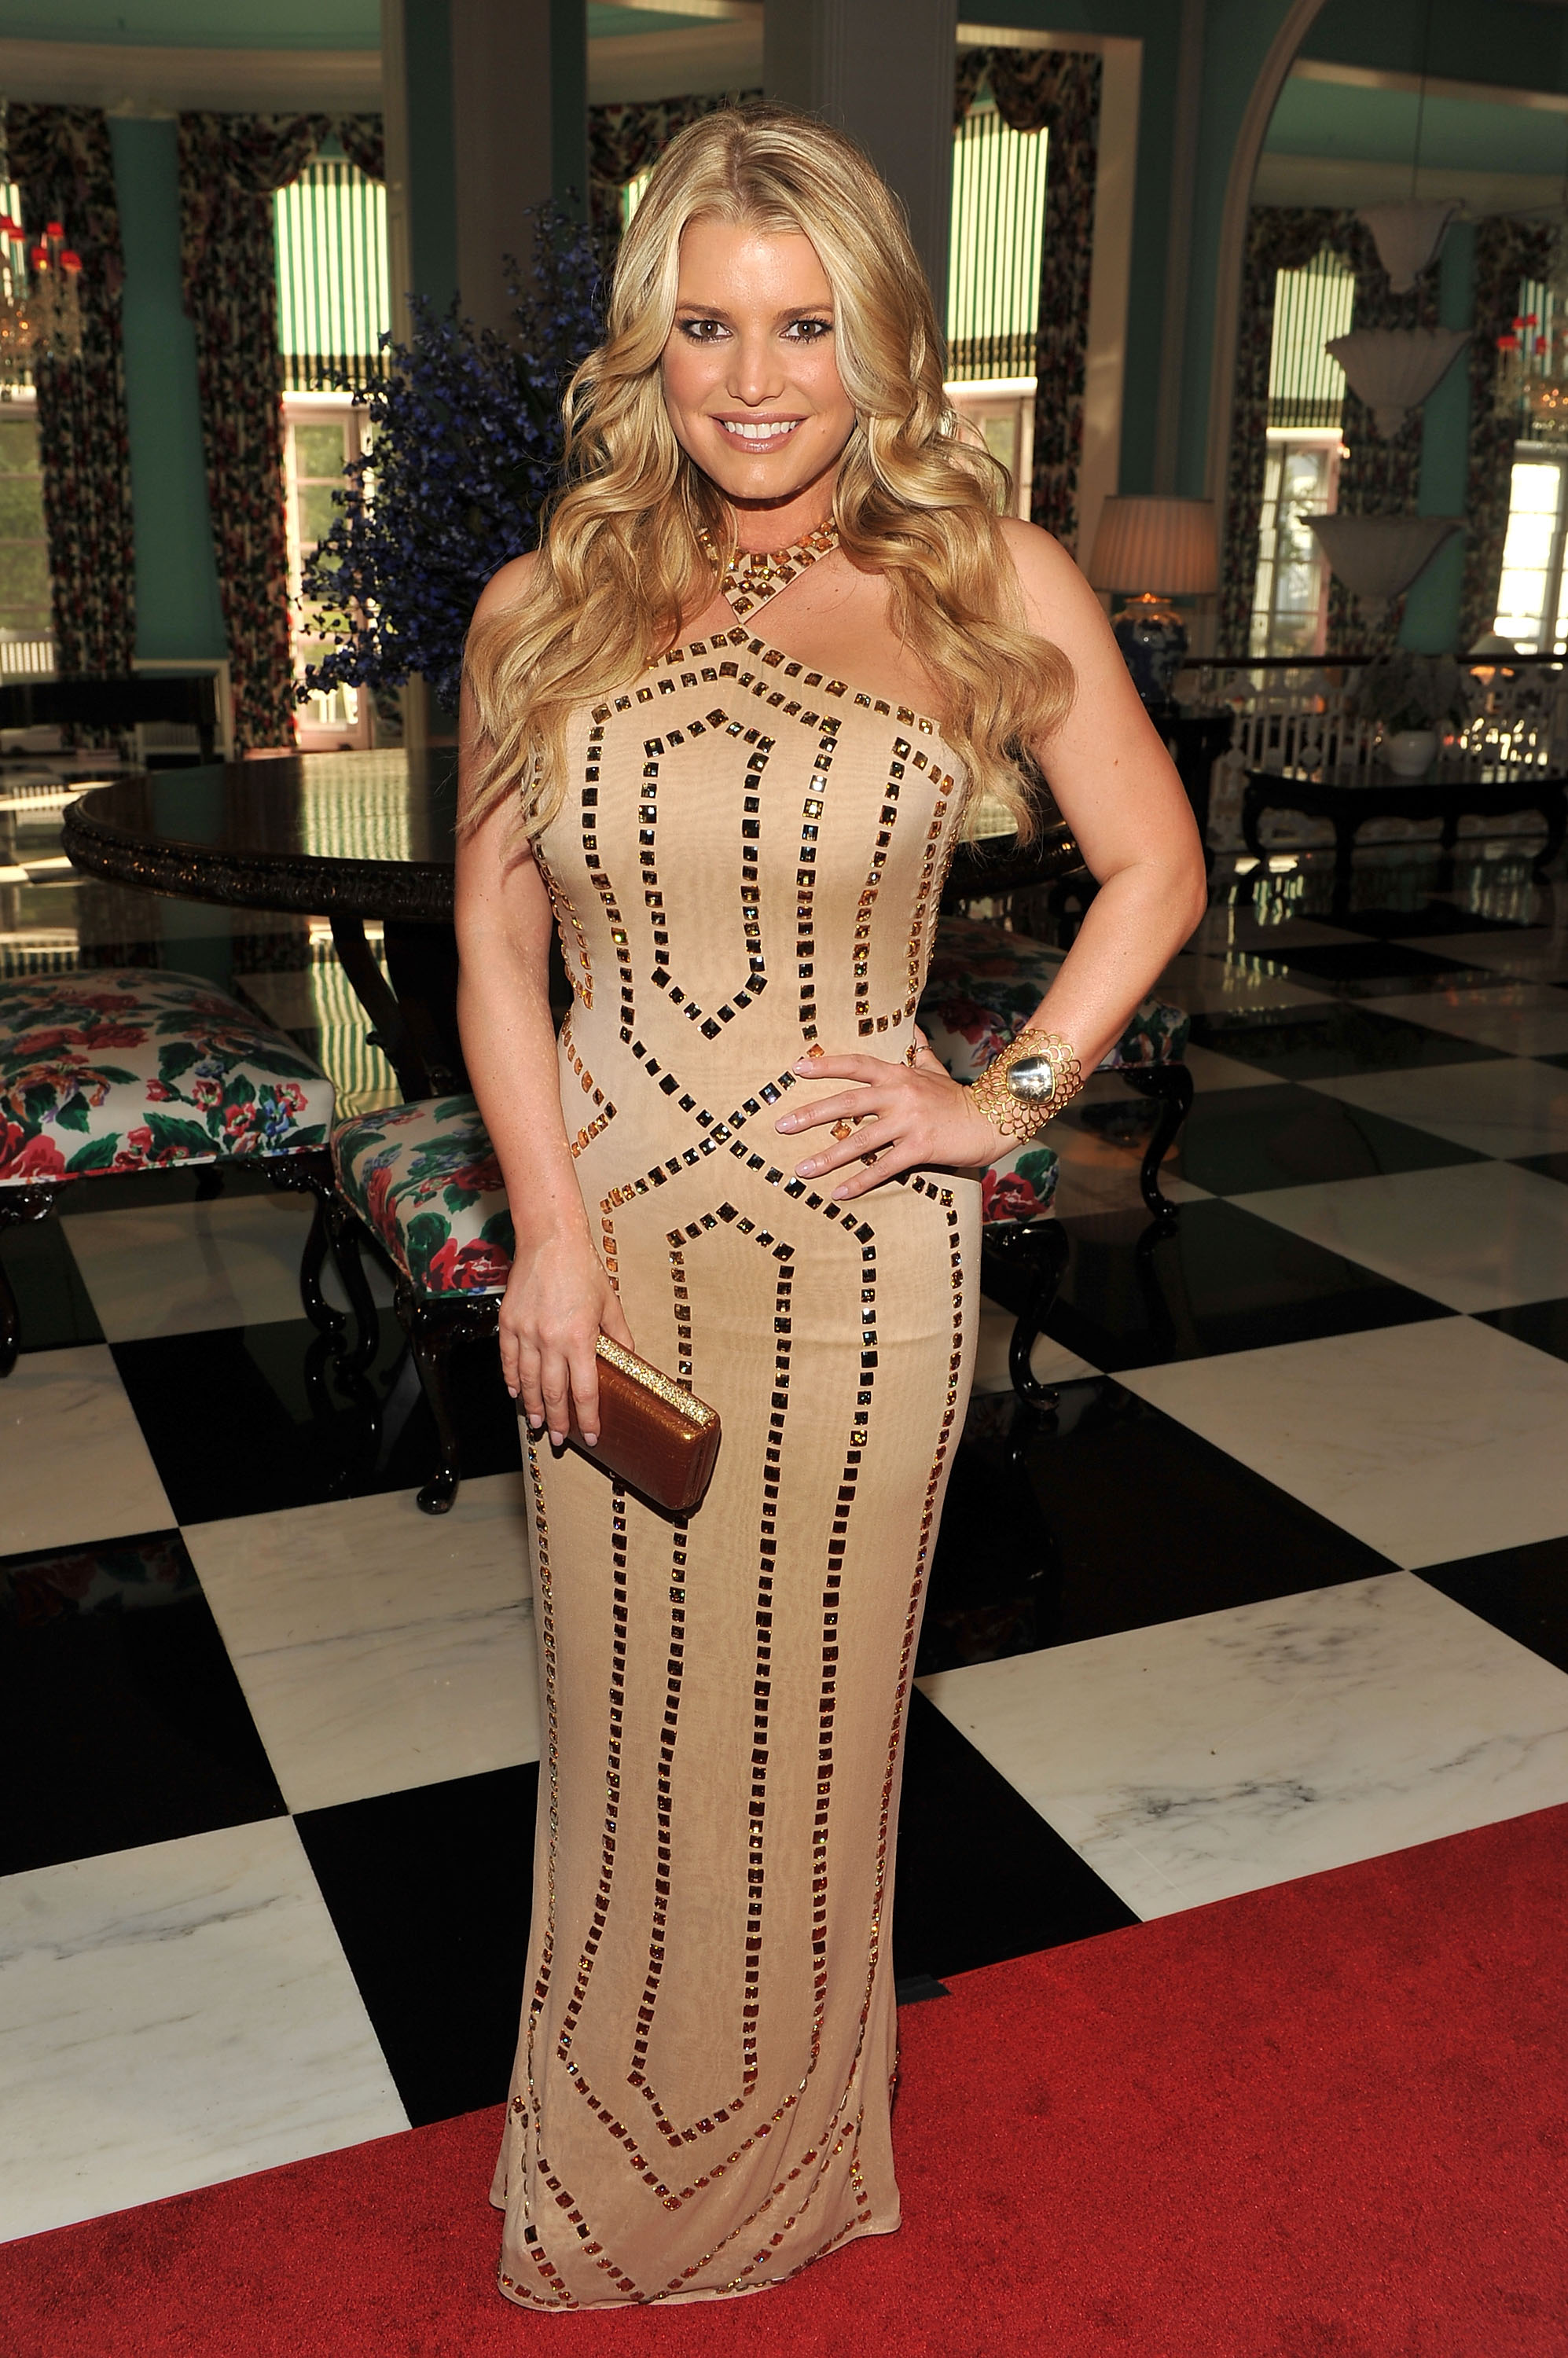 Jessica Simpson attends The Greenbrier for the gala opening of the Casino Club, 2010